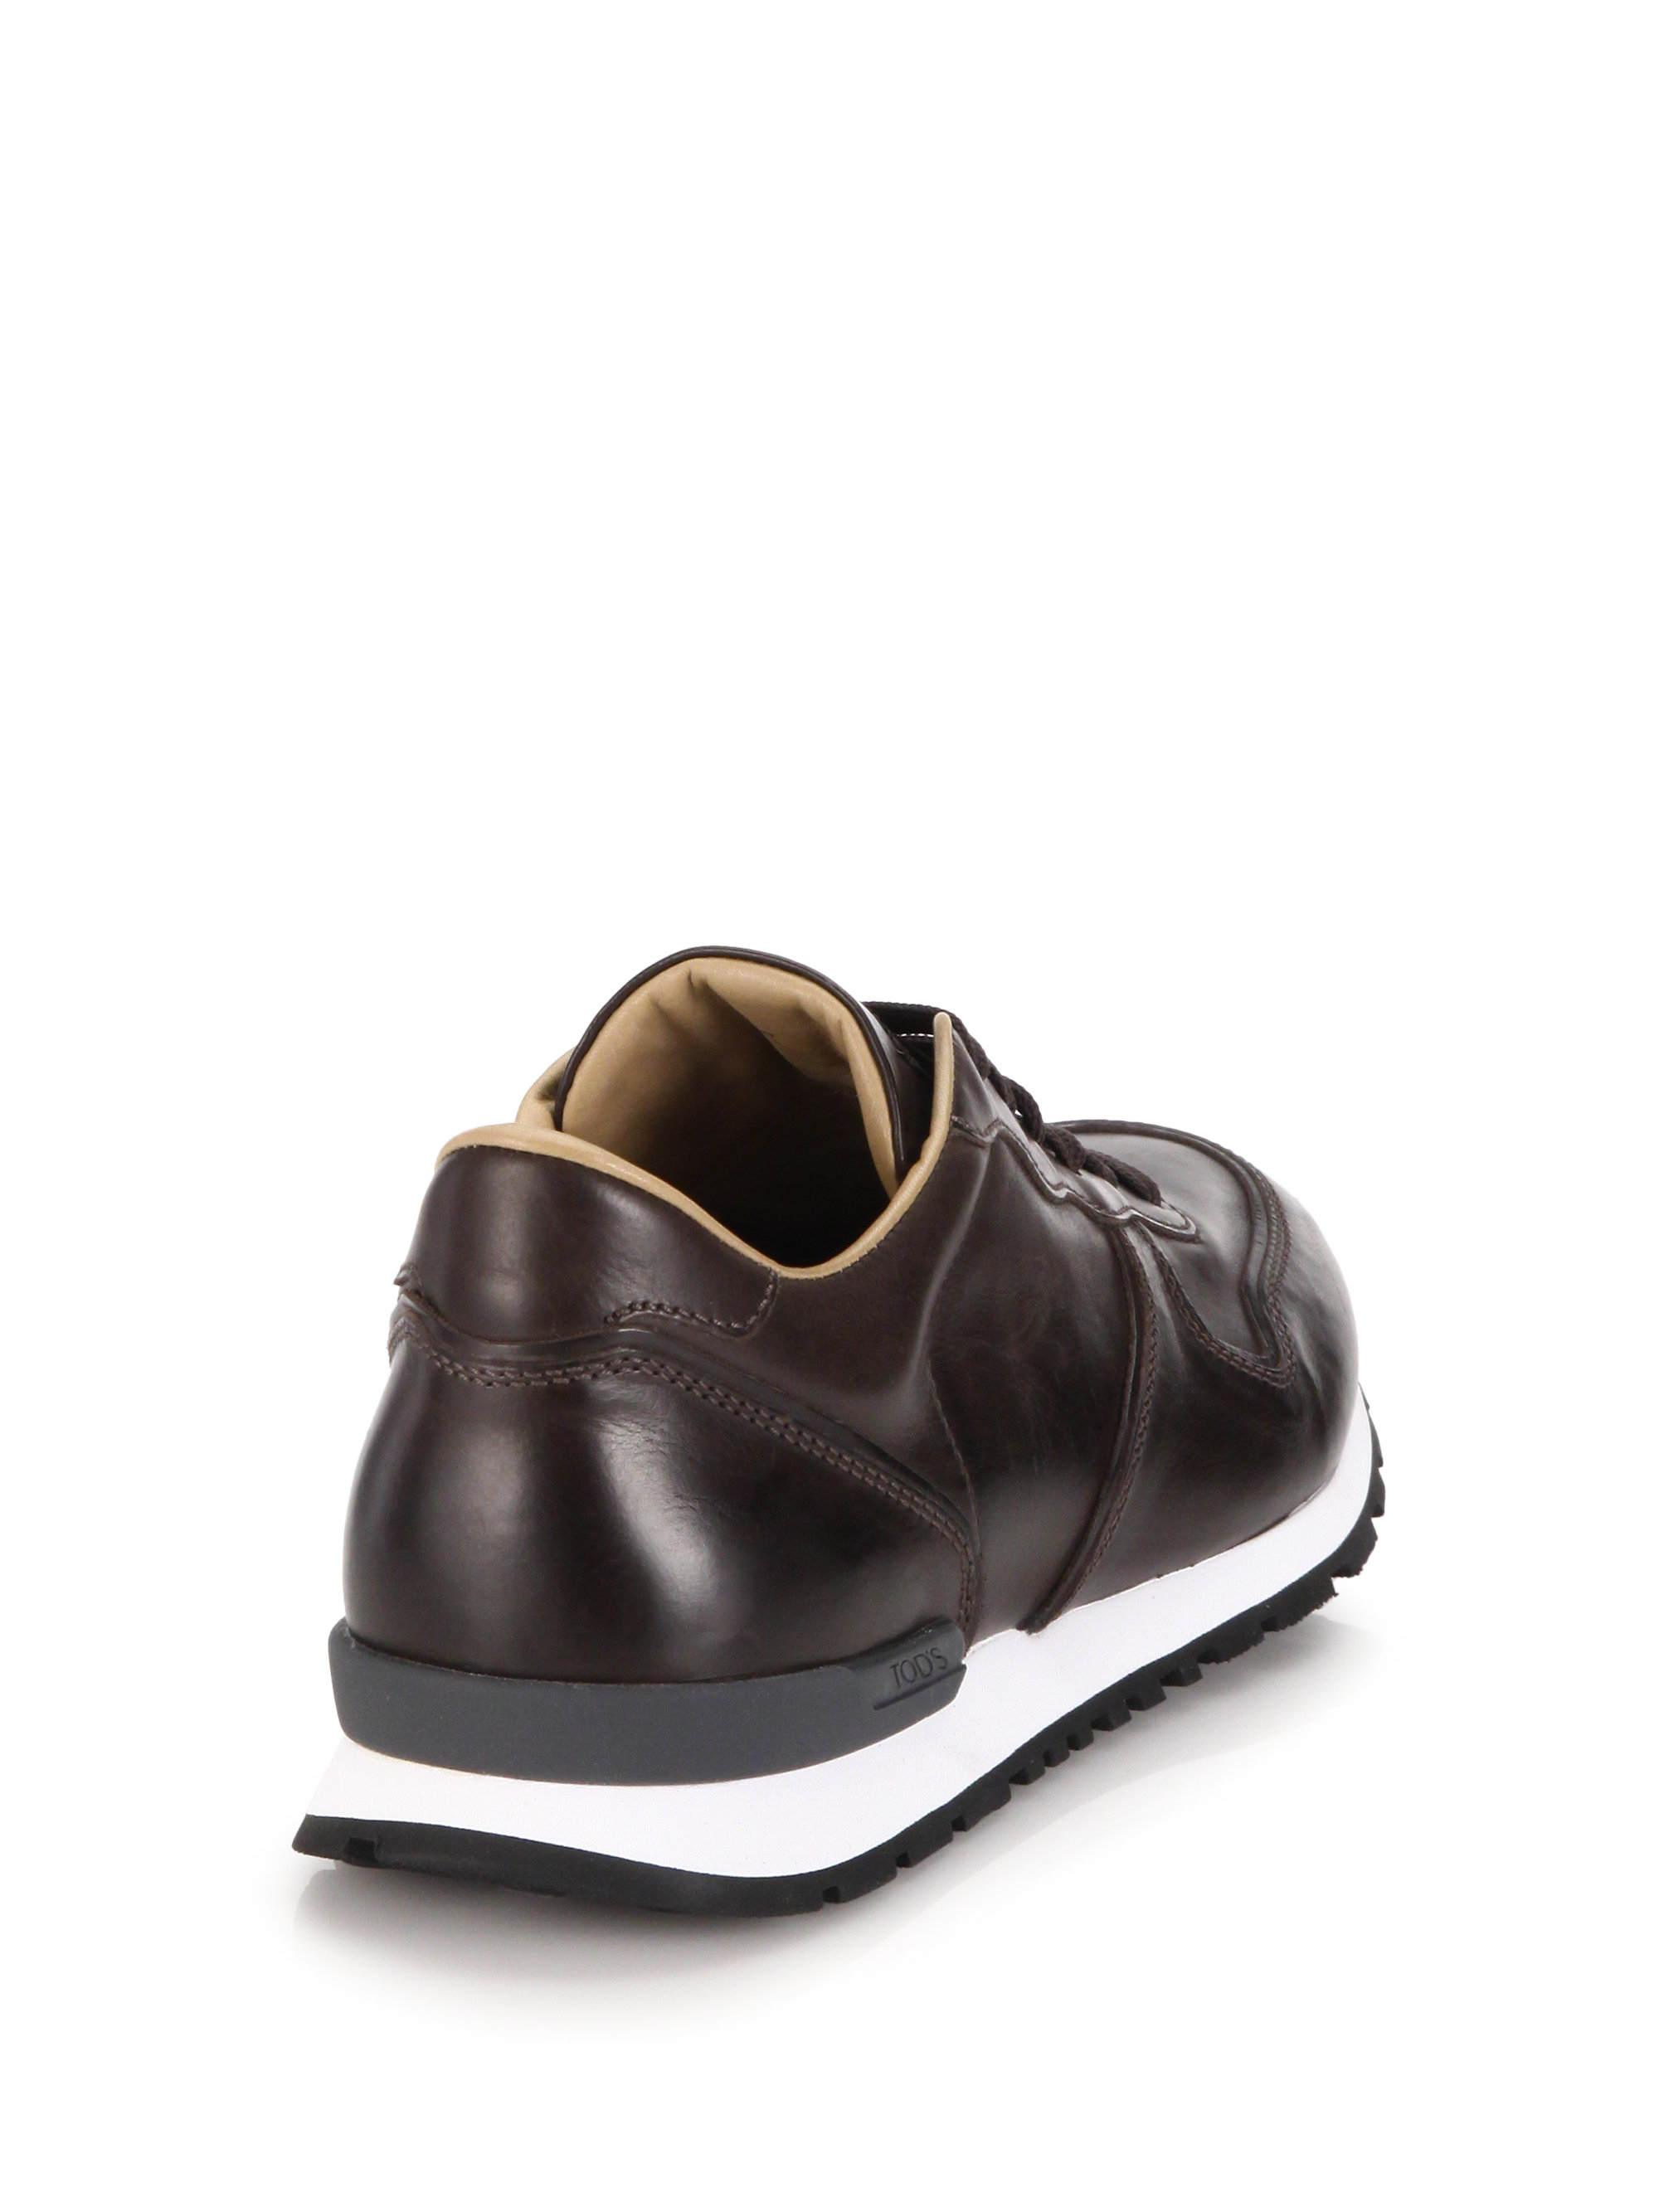 Sneakers in Leather Tod's Eastbay Cheap Price Countdown Package Cheap Online RaeHu7